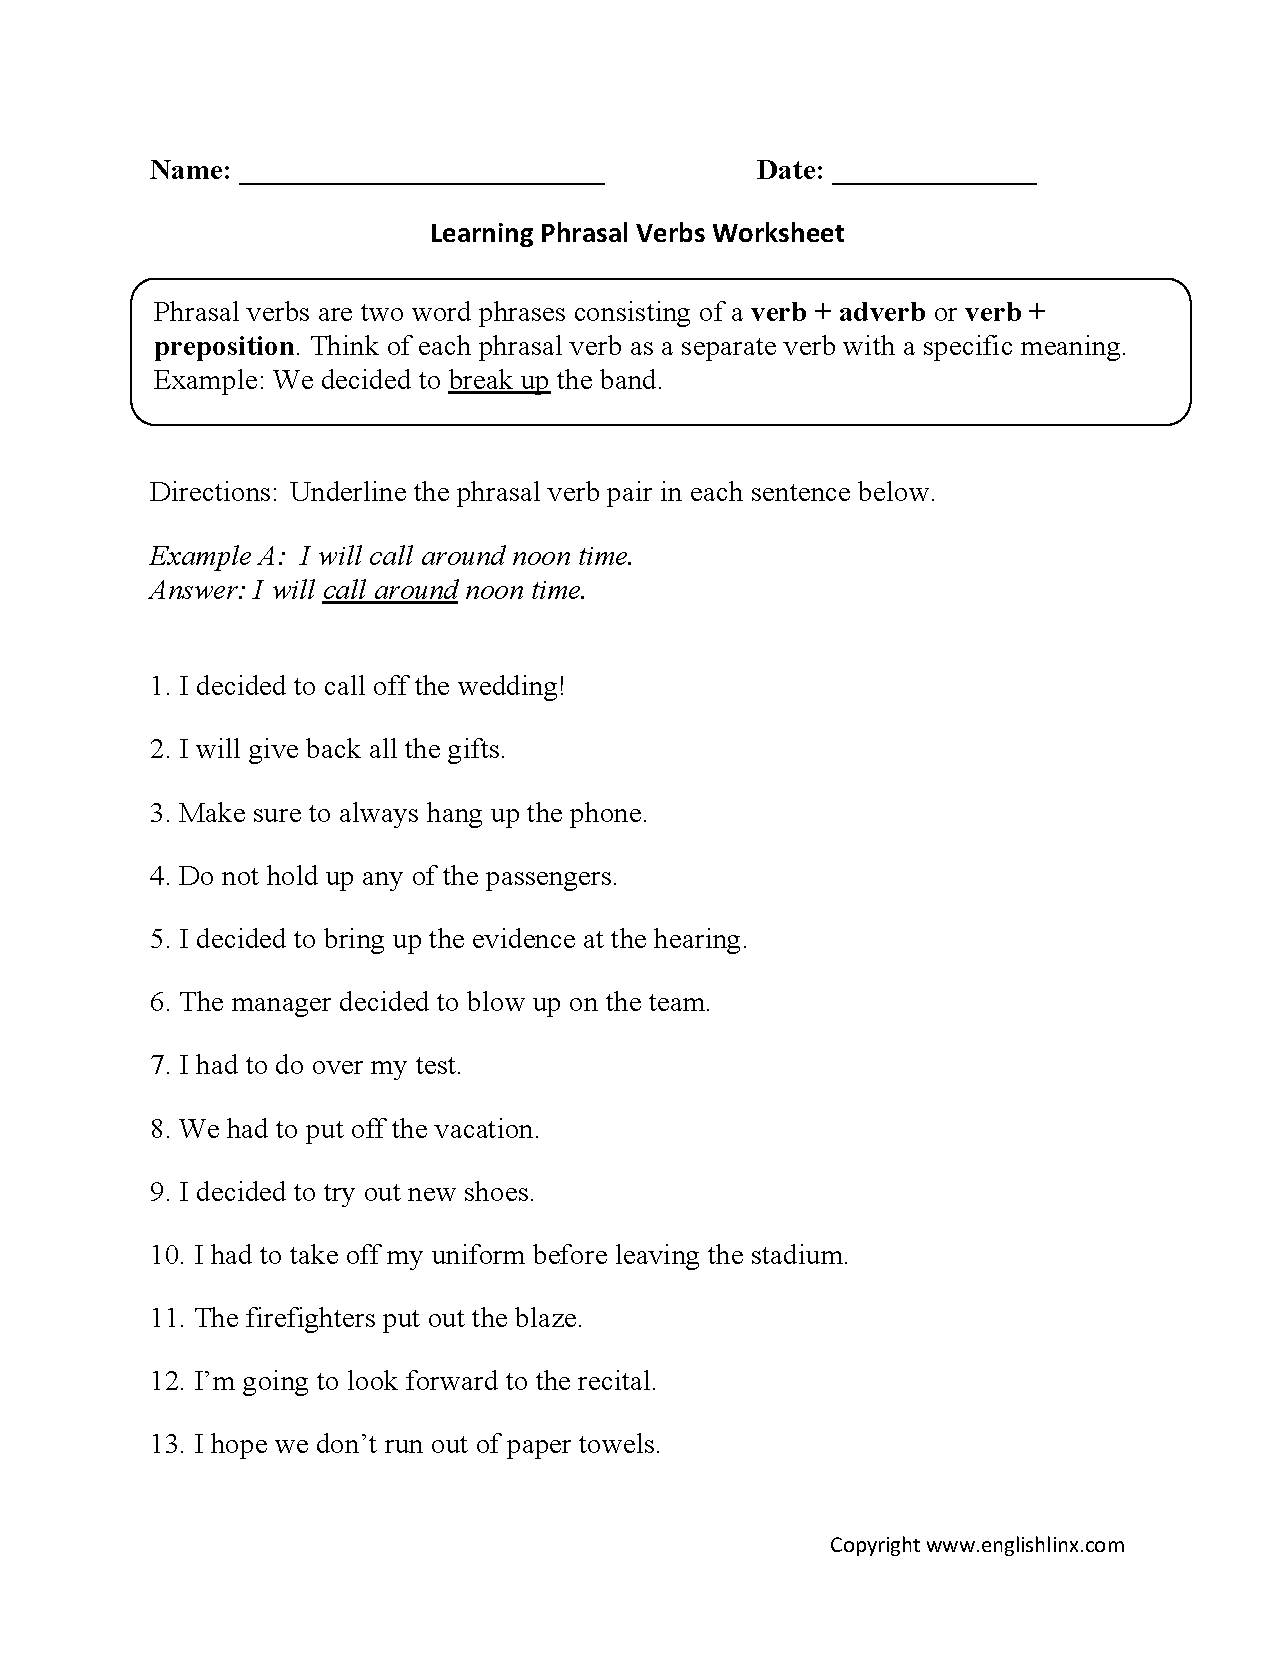 Worksheets Verb Worksheets 5th Grade englishlinx com verbs worksheets phrasal worksheets